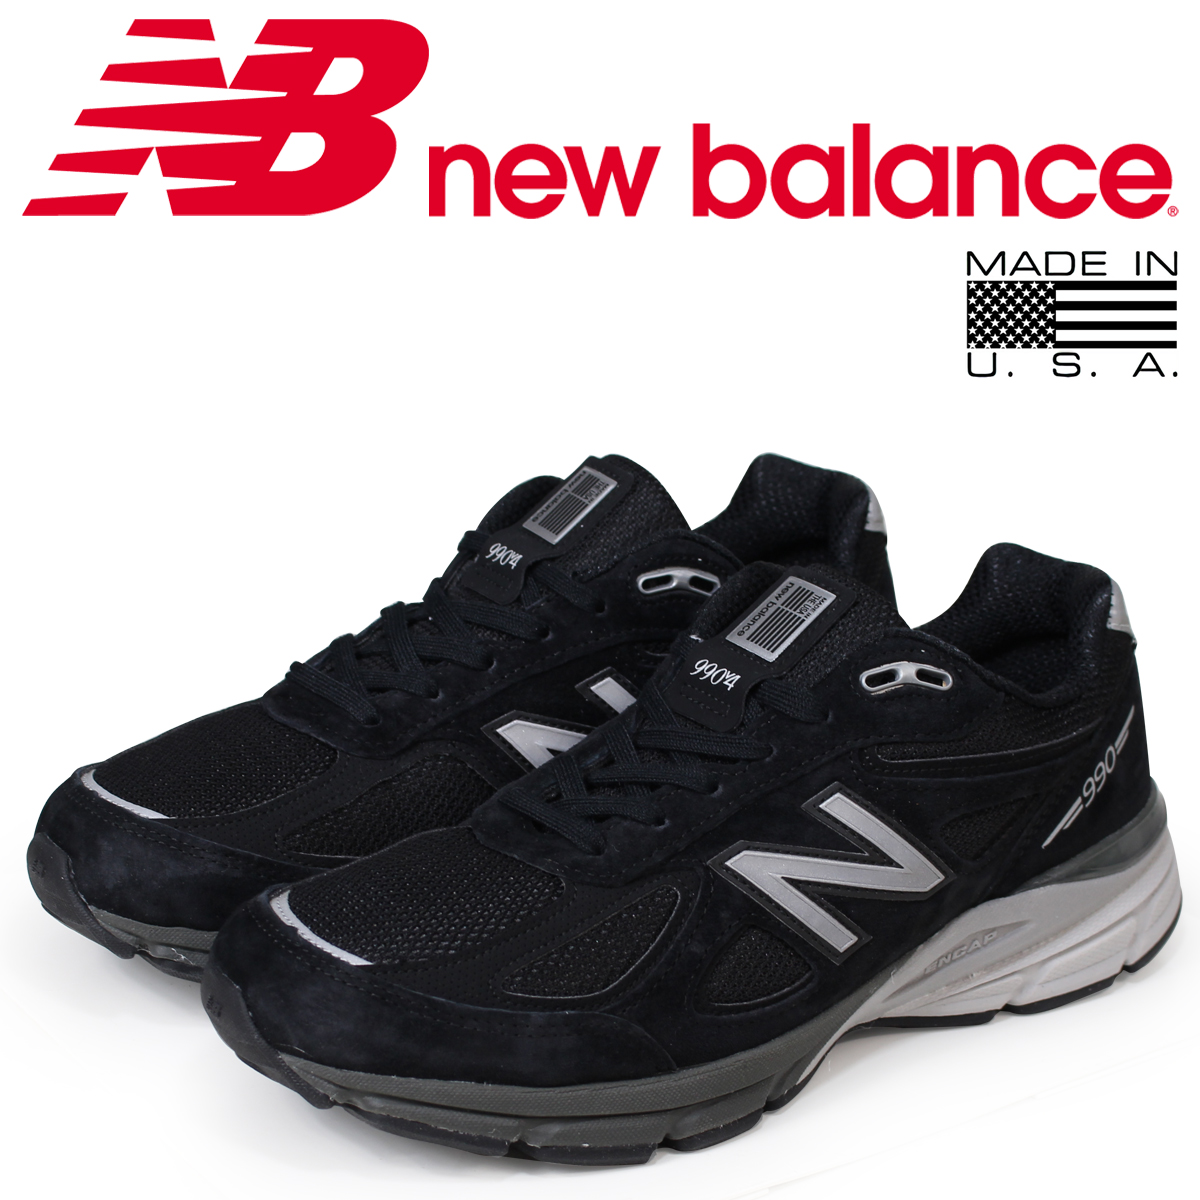 best service 937c9 50173 new balance 990 men's New Balance sneakers M990BK4 D Wise MADE IN USA shoes  black black